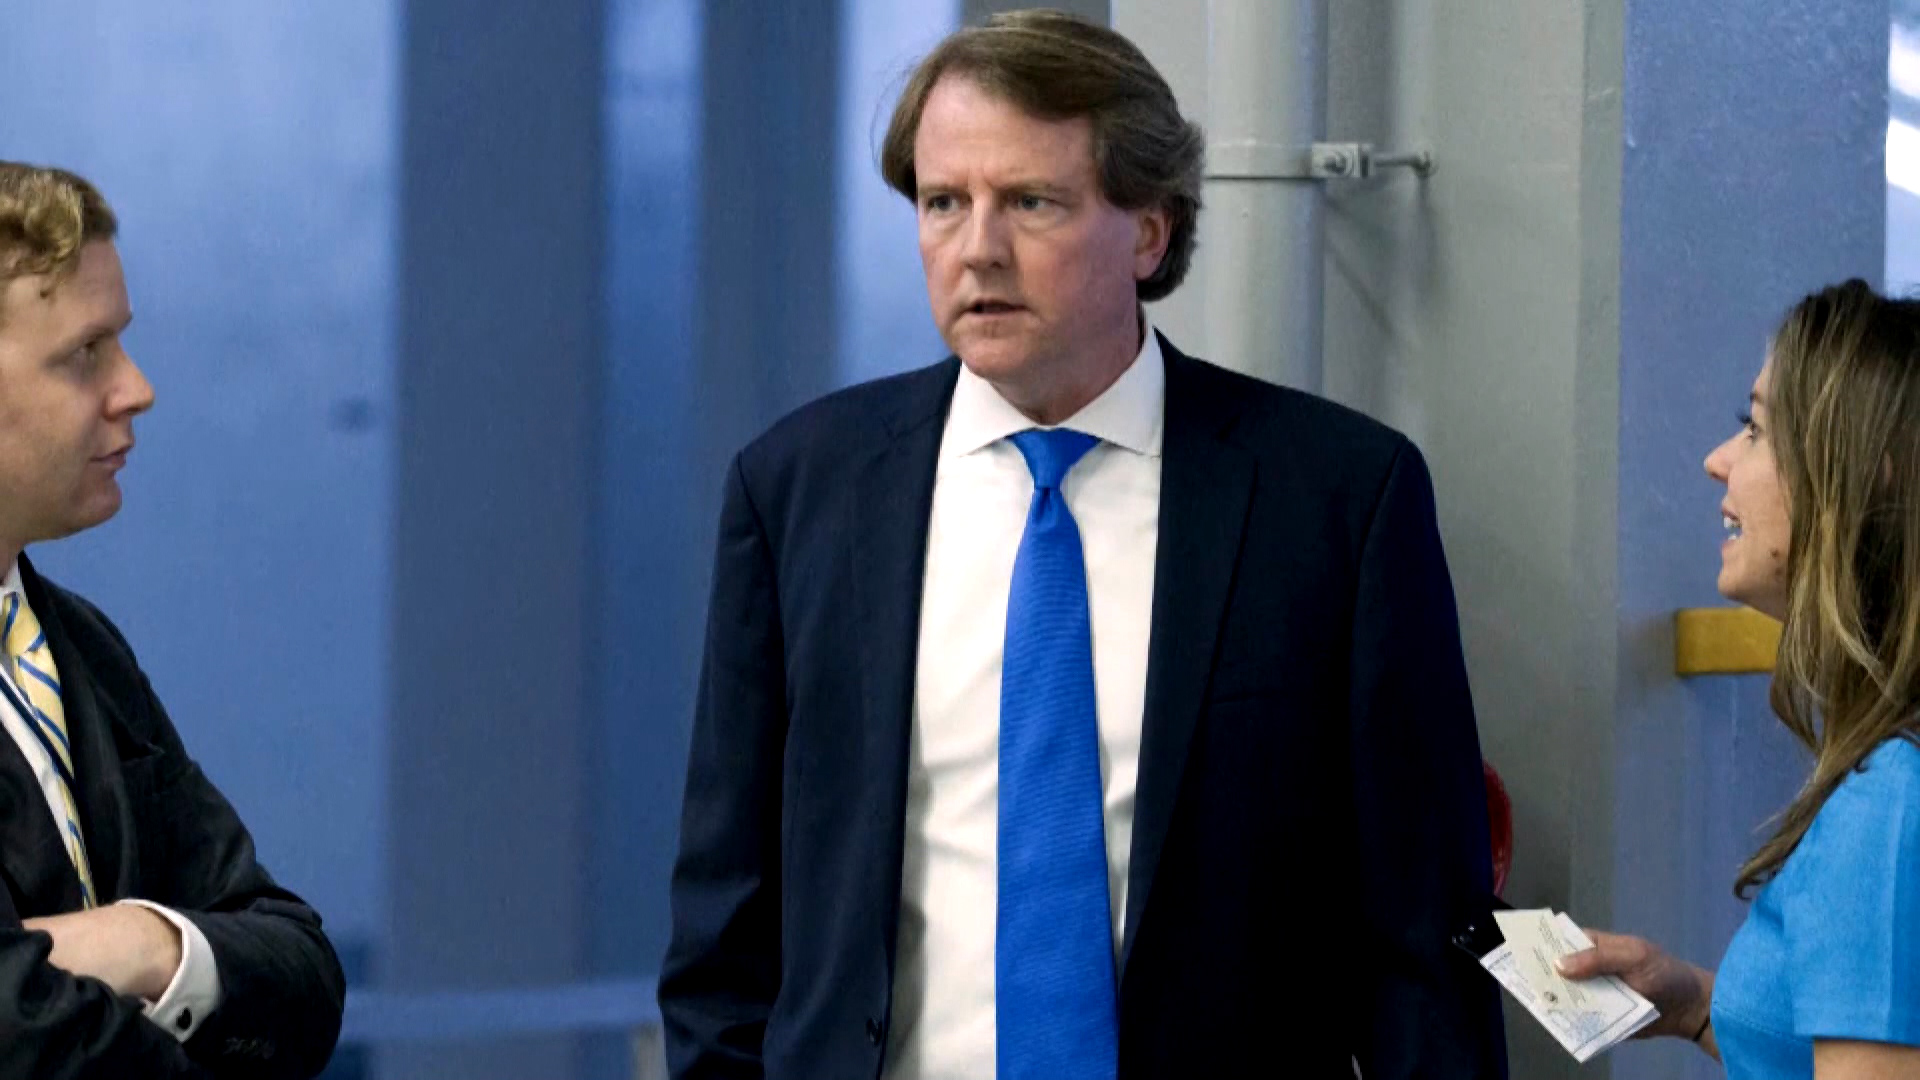 Trump Asked McGahn About Ordering DOJ Prosecutions Of Clinton, Comey